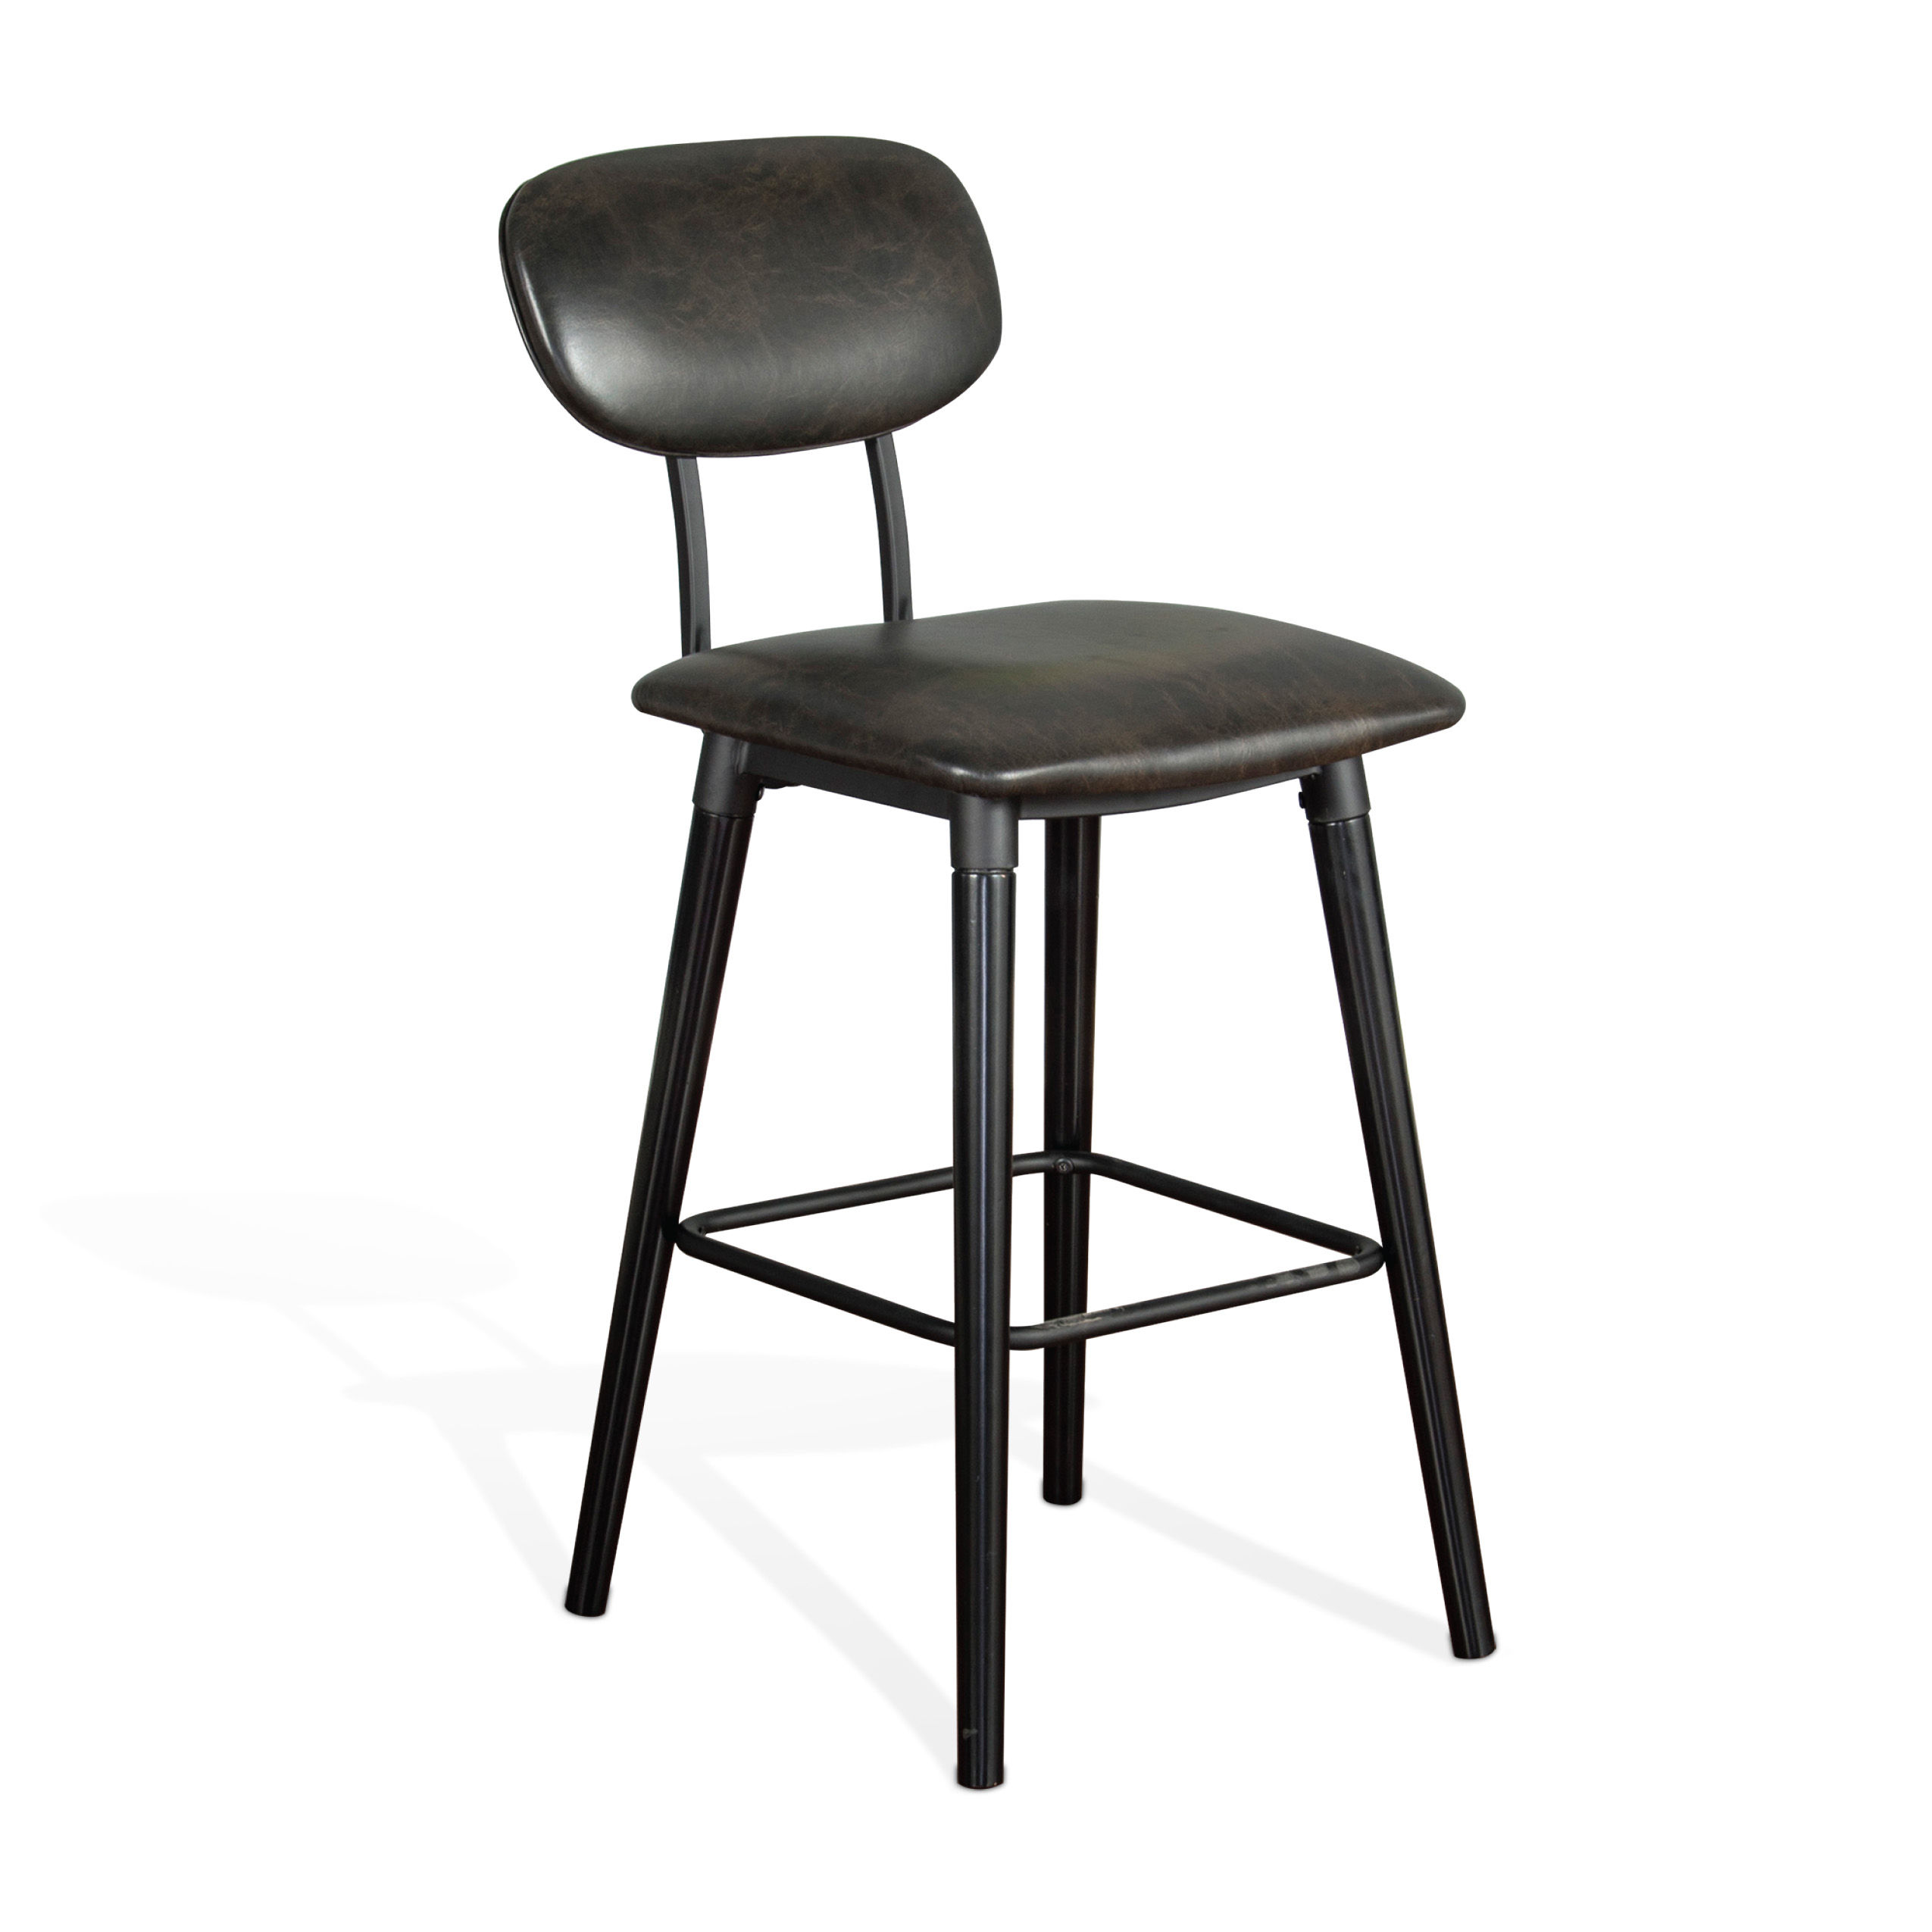 Tremendous Sunny Designs Black 30 Inch Bar Stool Pabps2019 Chair Design Images Pabps2019Com